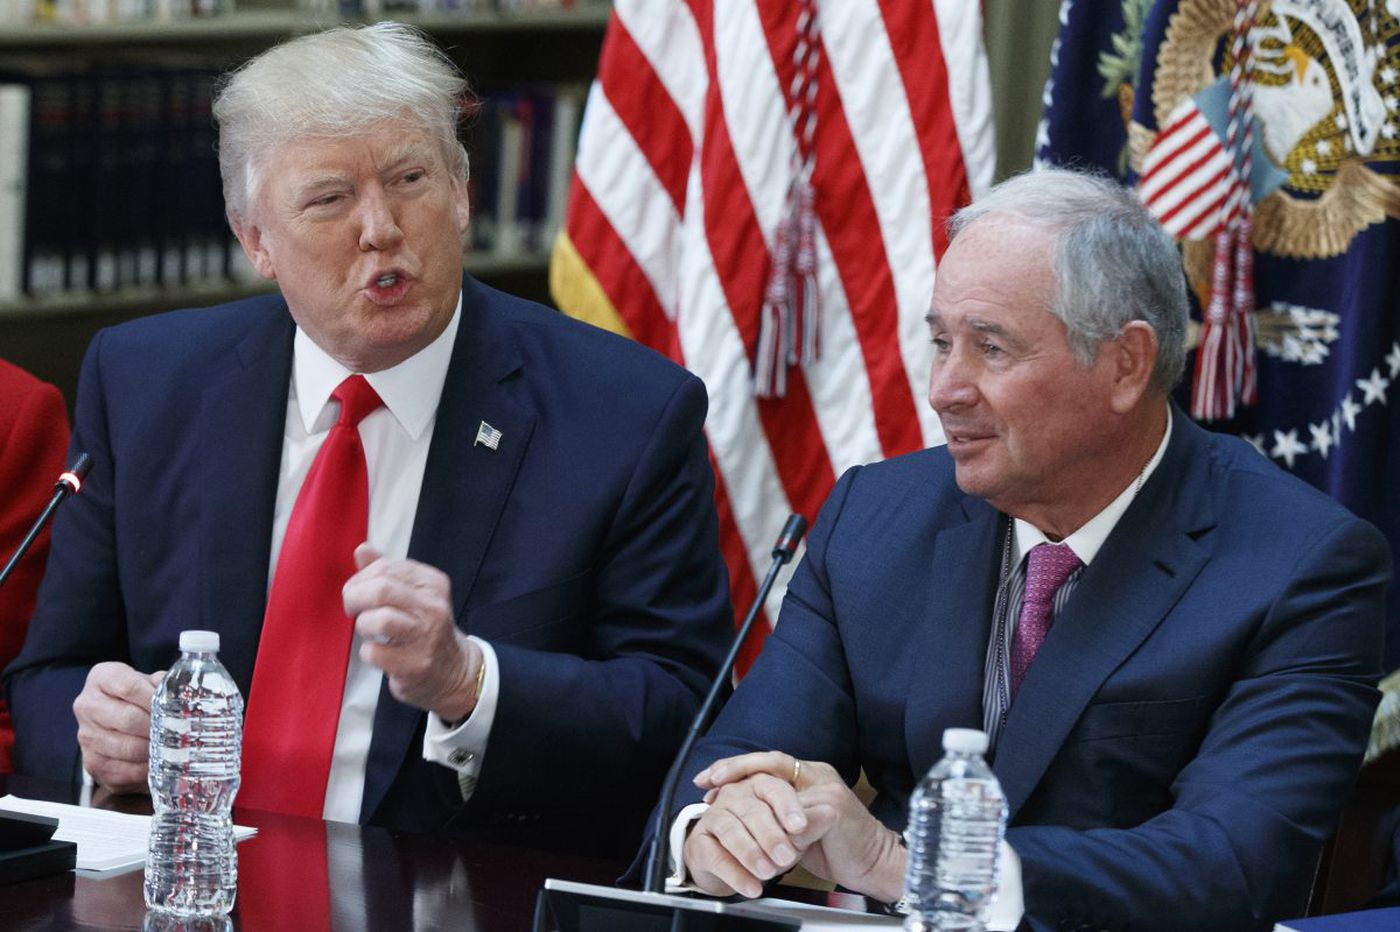 Big numbers: Stephen Schwarzman's $25M Abington gift and his firm's $300M+ in fees and profits from Pa. school pensions